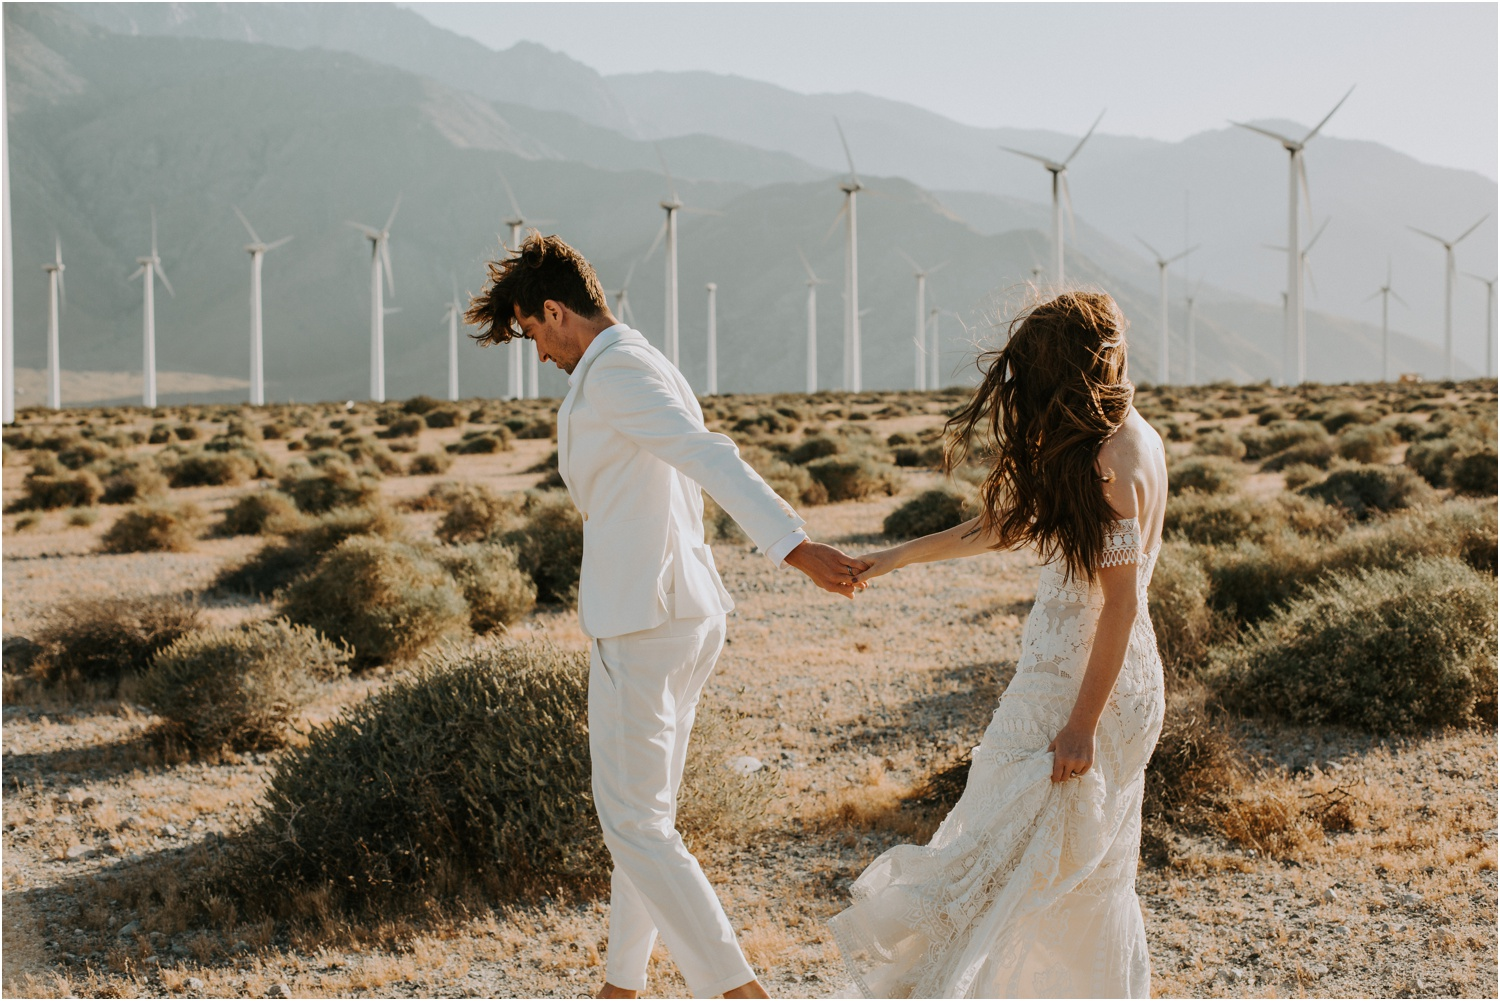 Palm Springs Elopement | Stephanie + Nick | Courtney Jess Photography